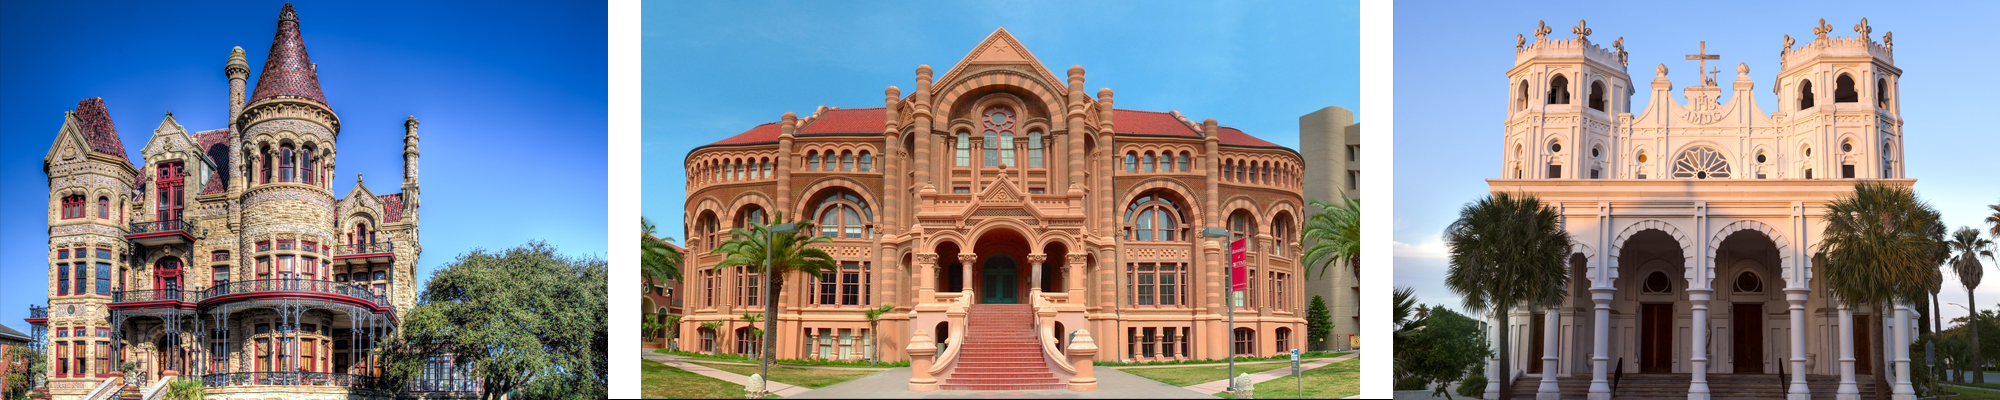 Galveston historical buildings